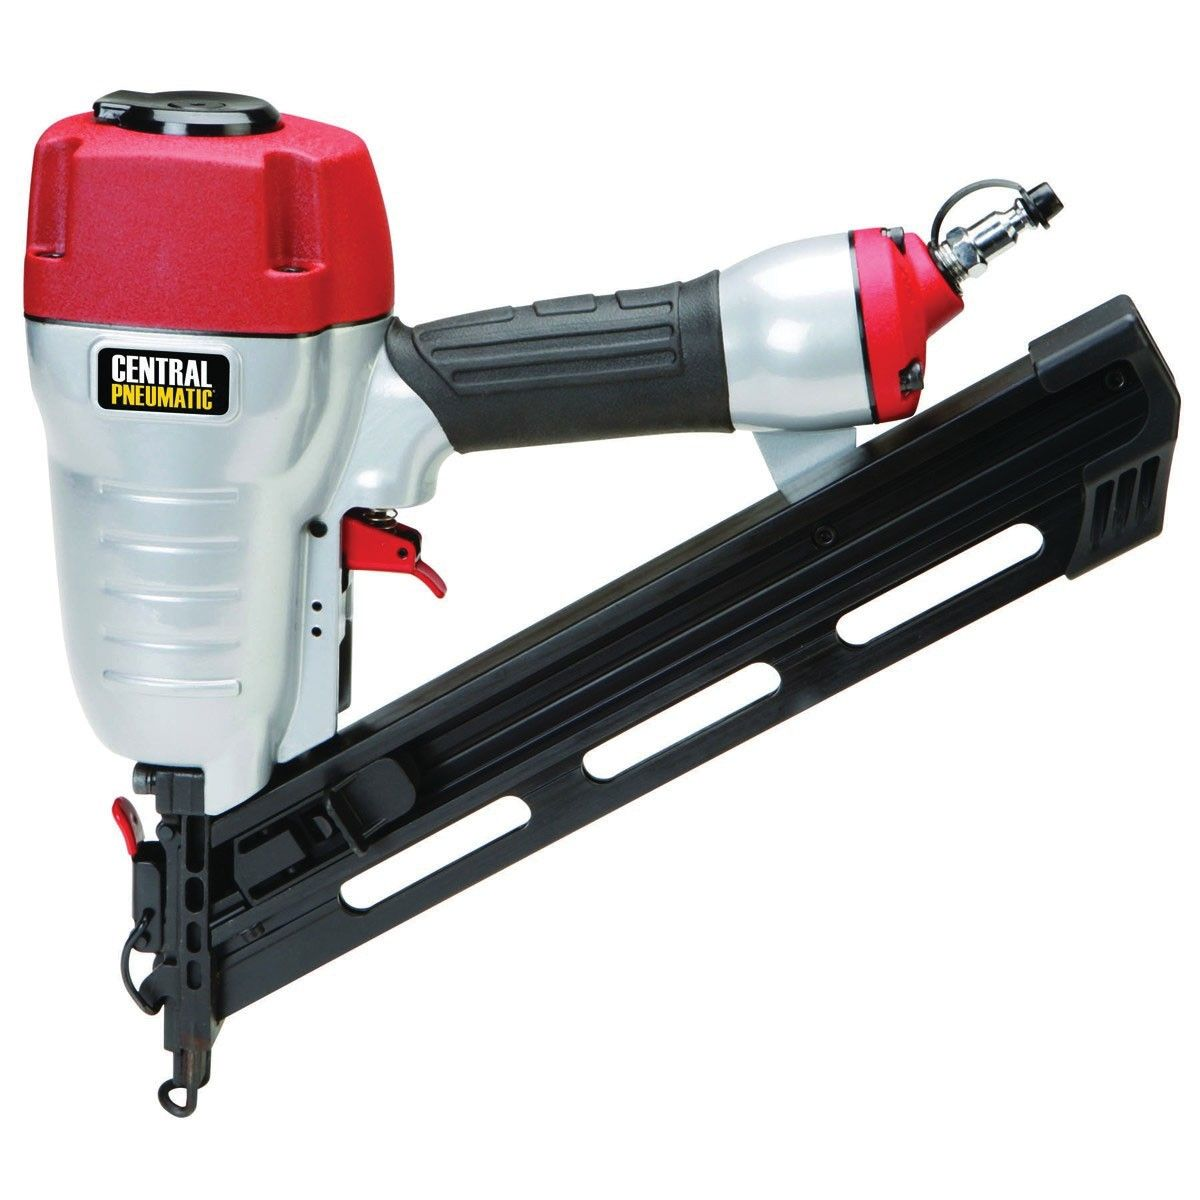 Save On Air Nailers And Pneumatic Staplers At Harbor Freight Tools Prices High Quality Other